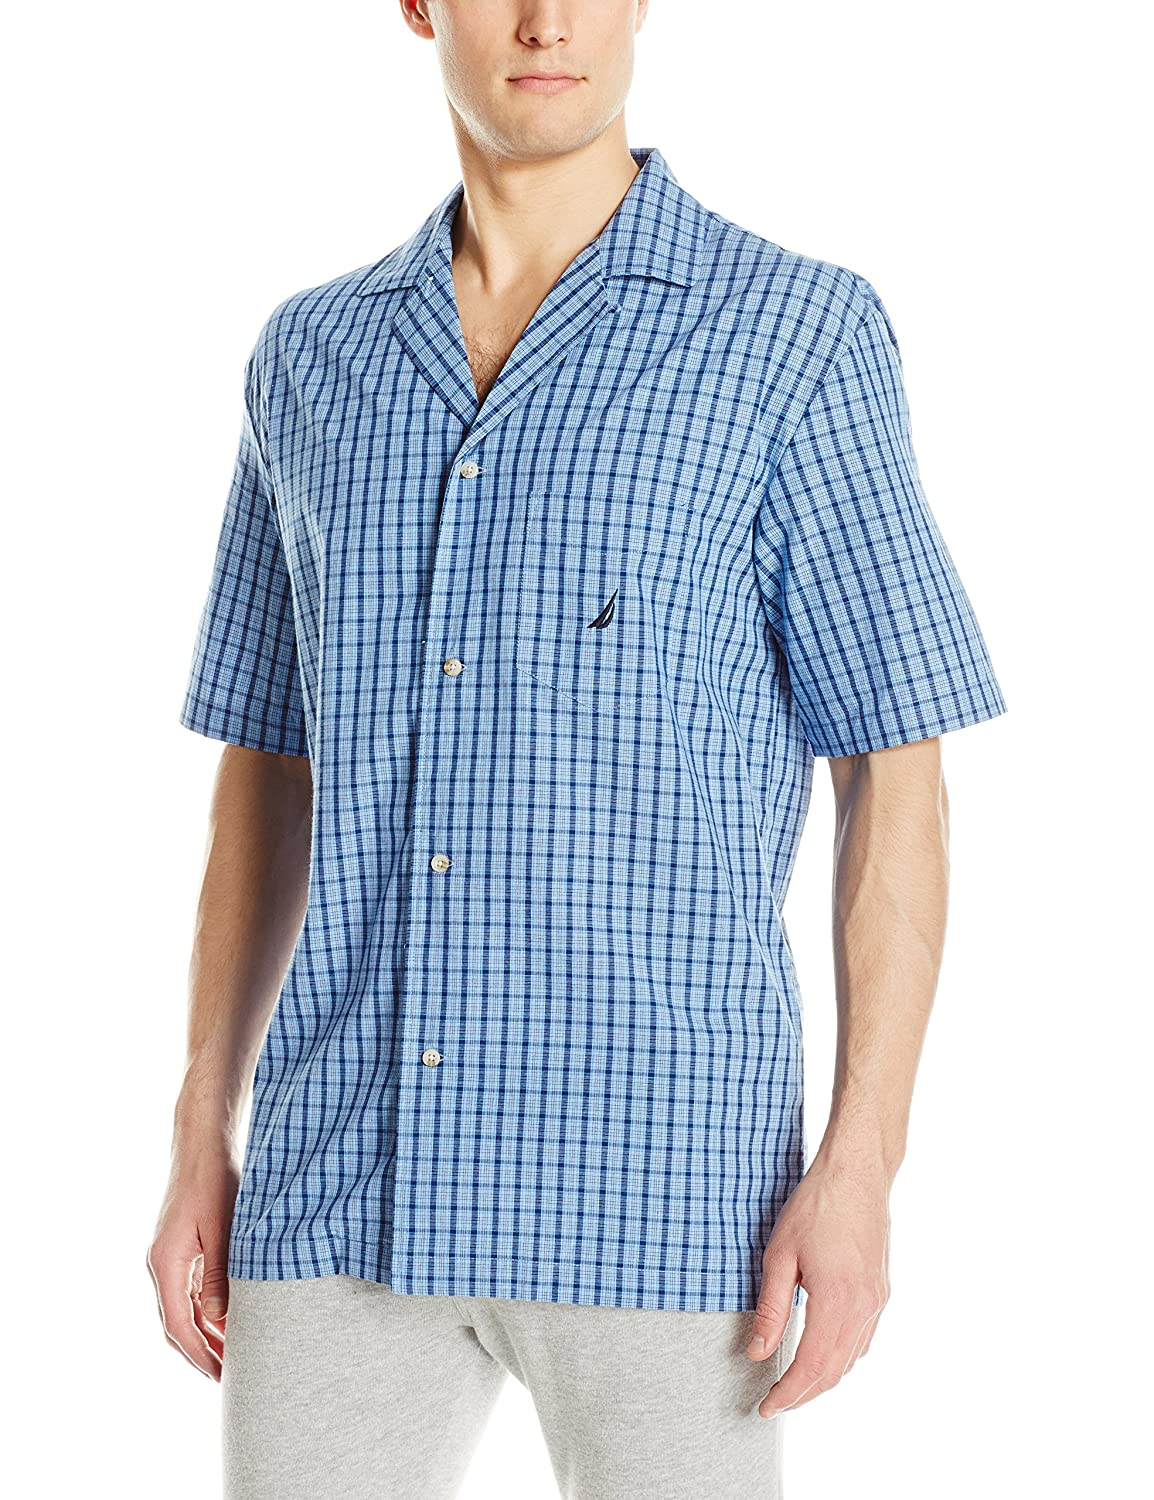 Nautica Mens Blue Plaid Cotton Sleep Top Nautica Men's Sleepwear 300165